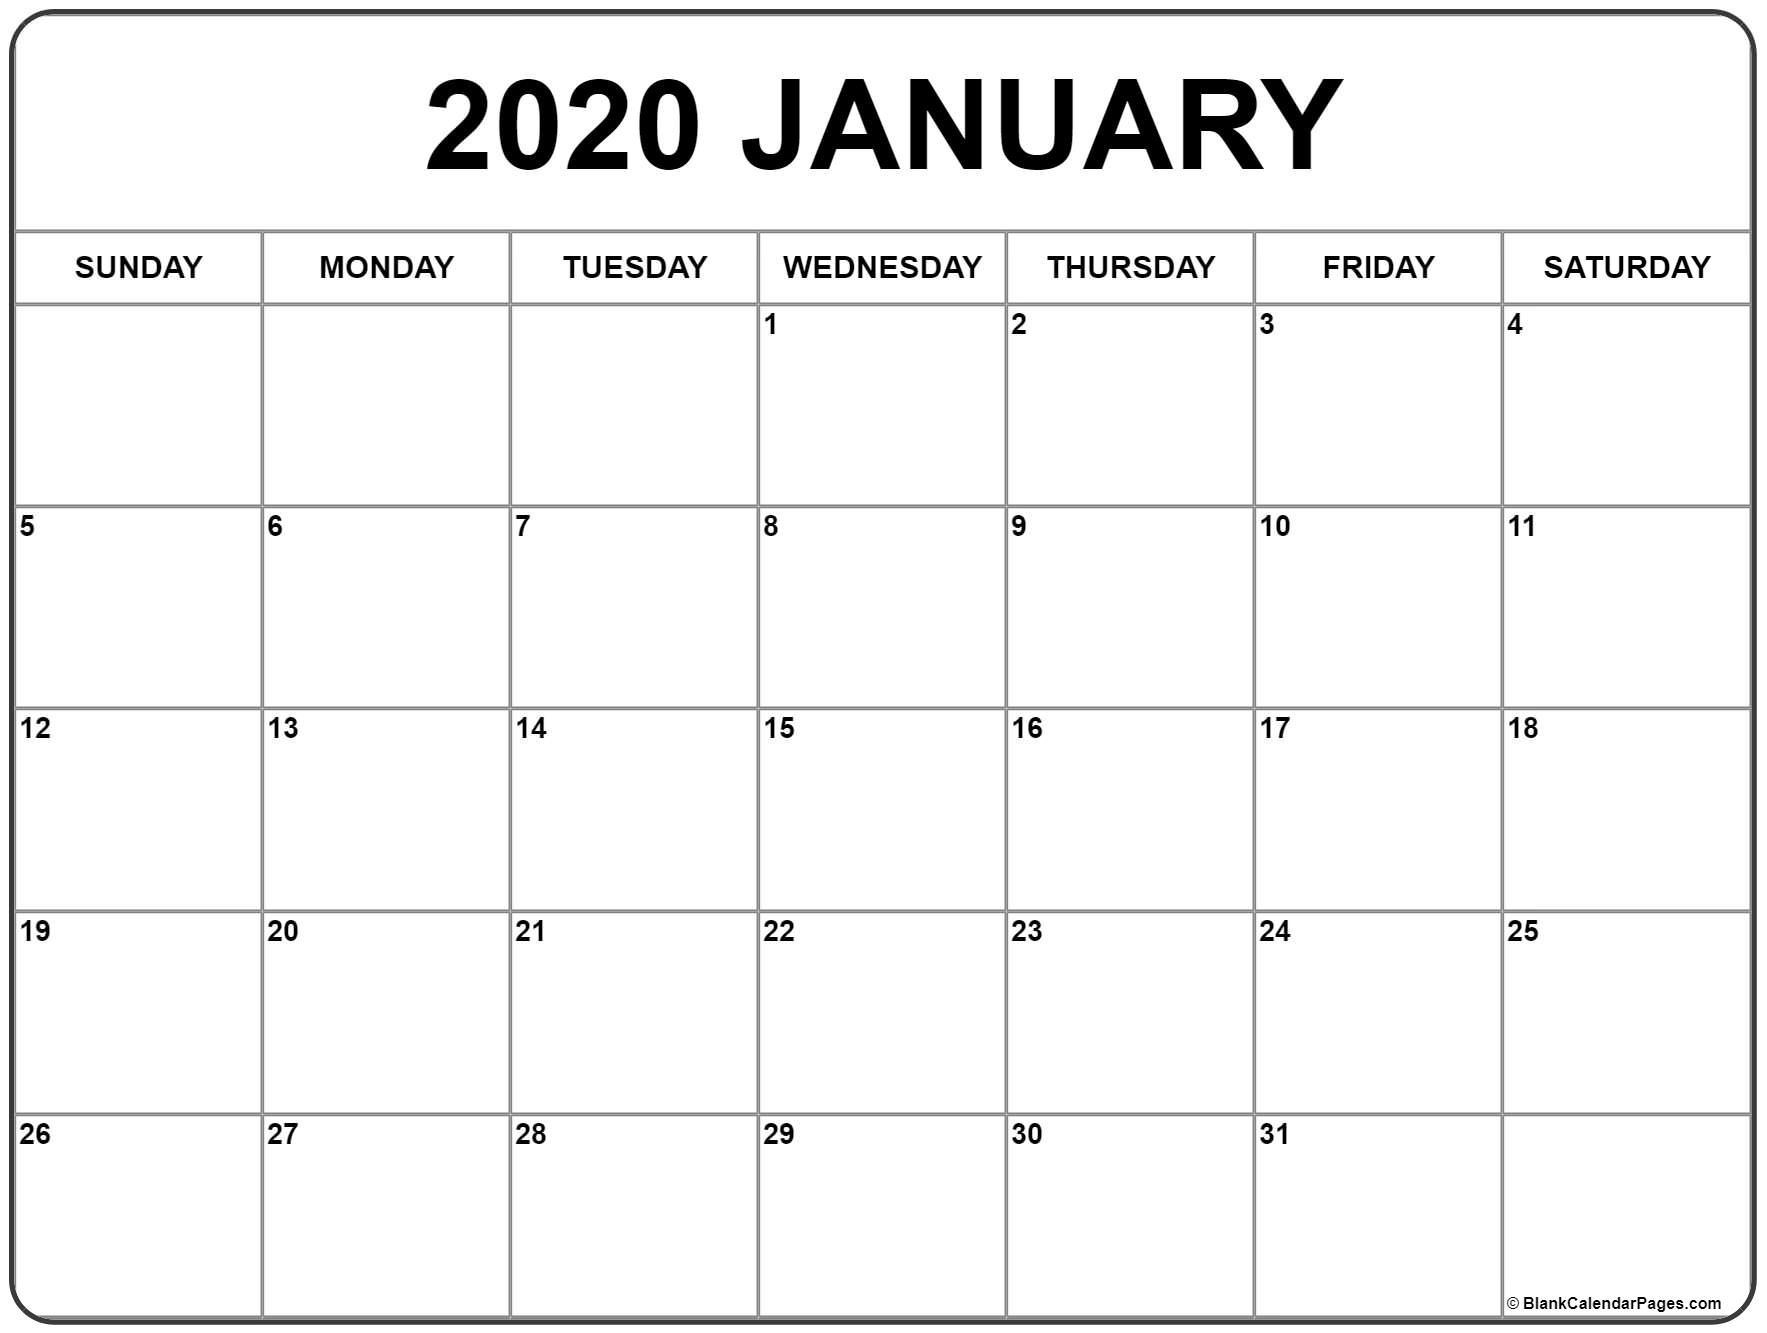 January 2020 Calendar | Free Printable Monthly Calendars  Calendar Month To Month Print